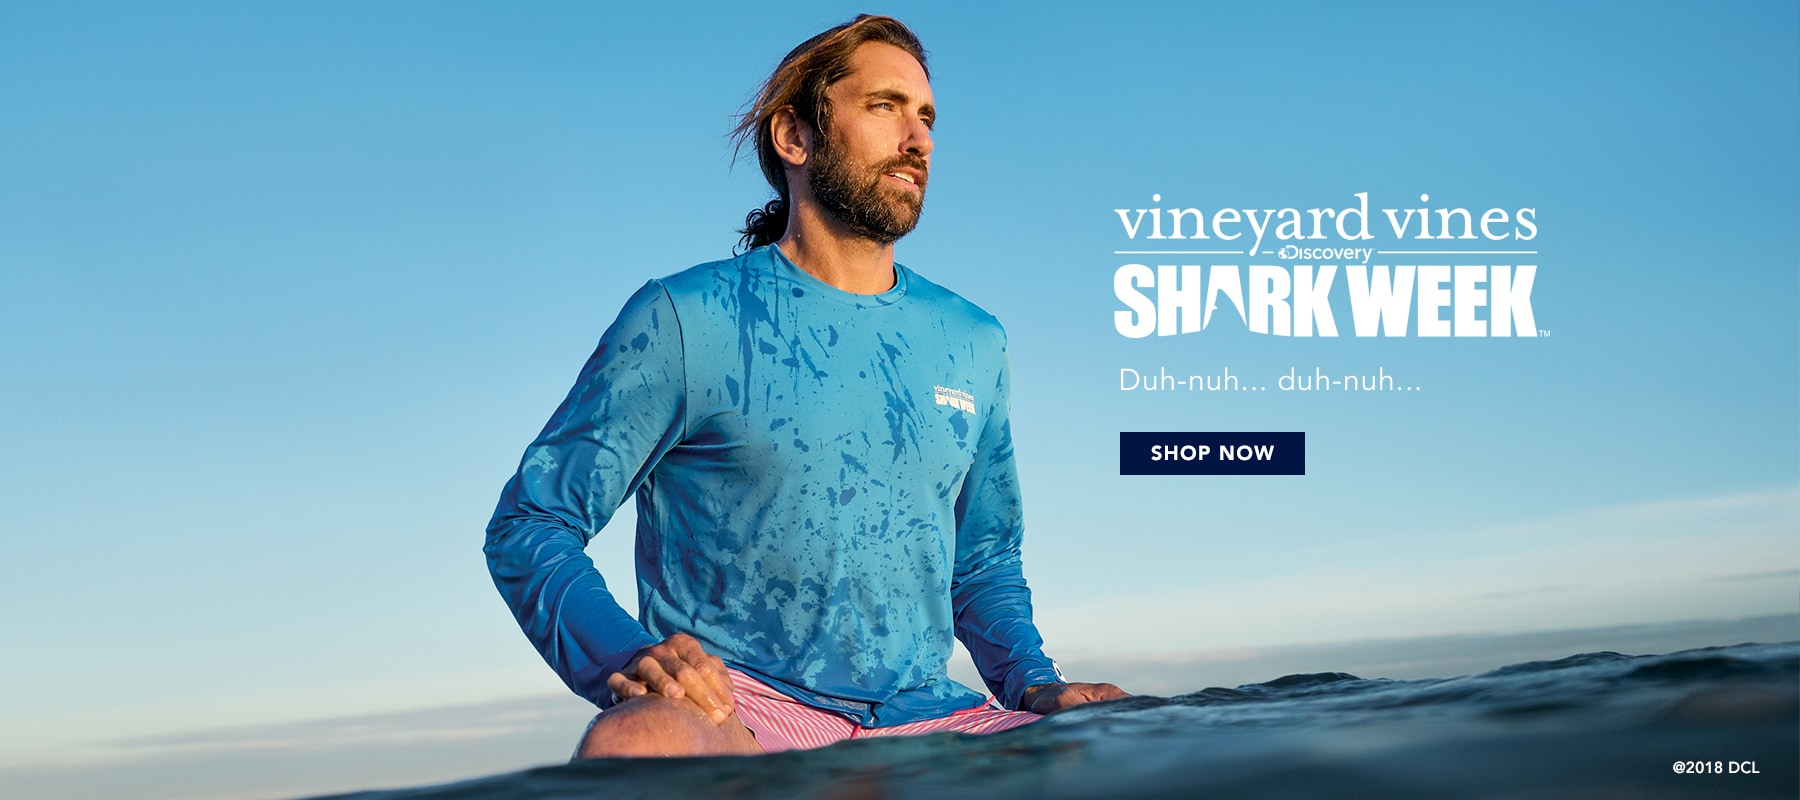 vineyard vines x Shark Week. Shop our limited edition collection. Shop Now.